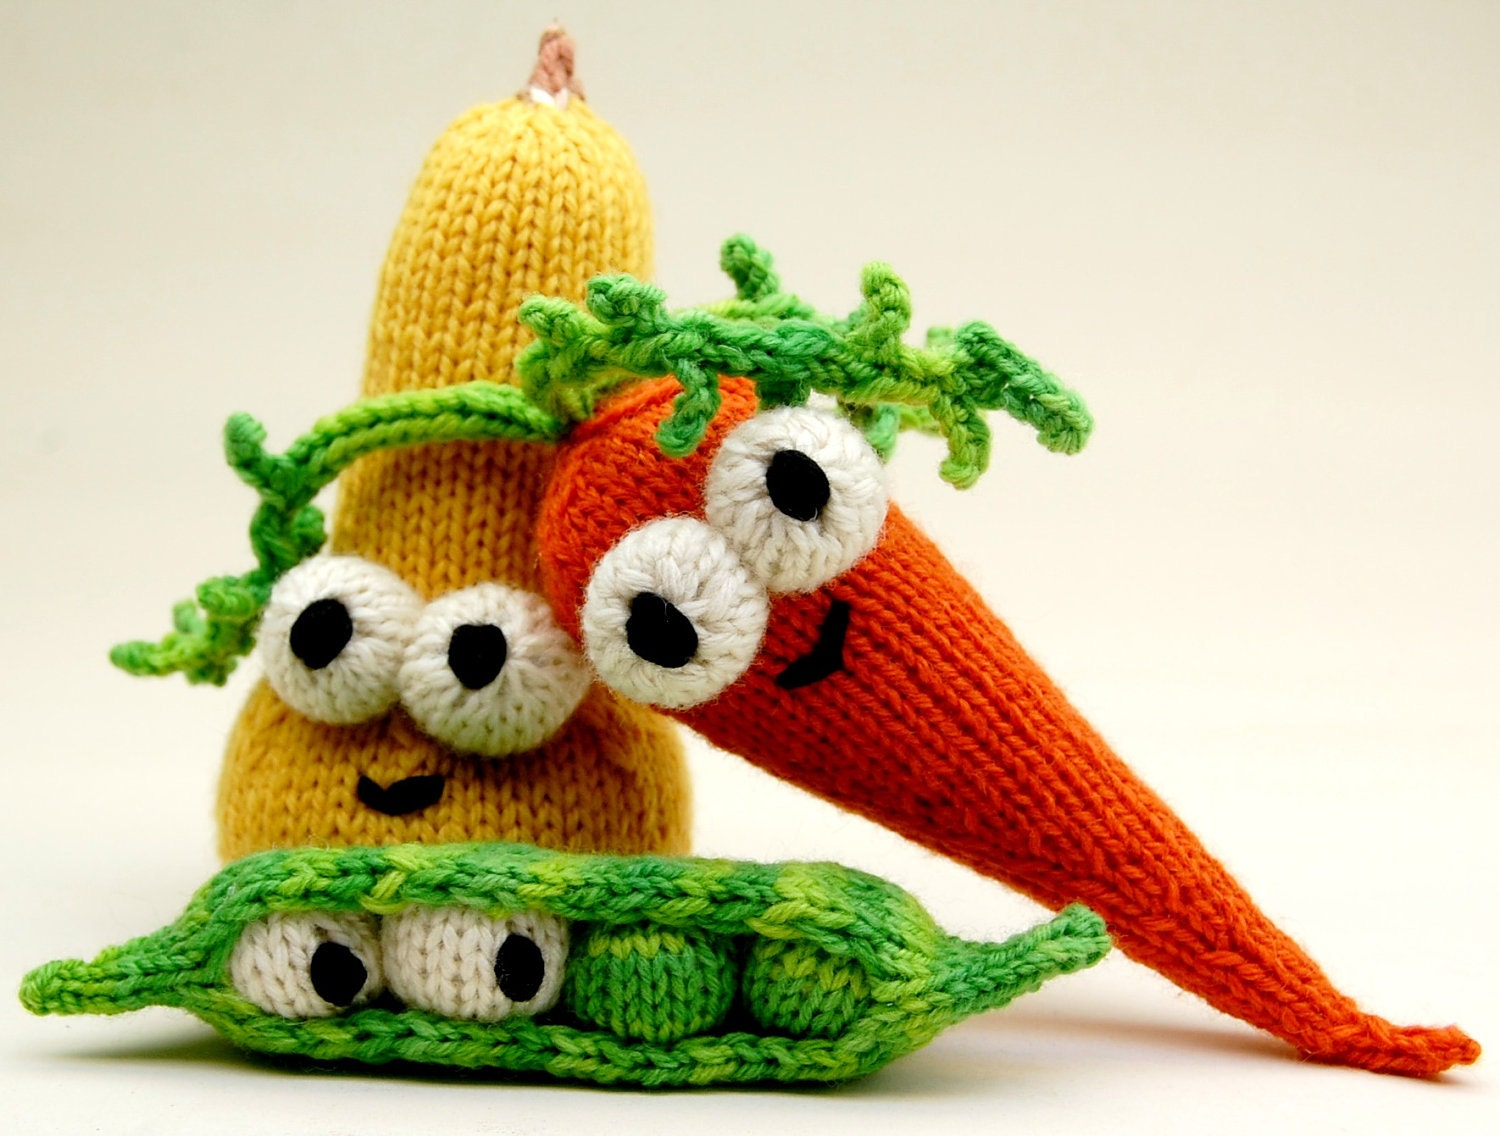 Amigurumi Knitting Patterns Catalog of Patterns